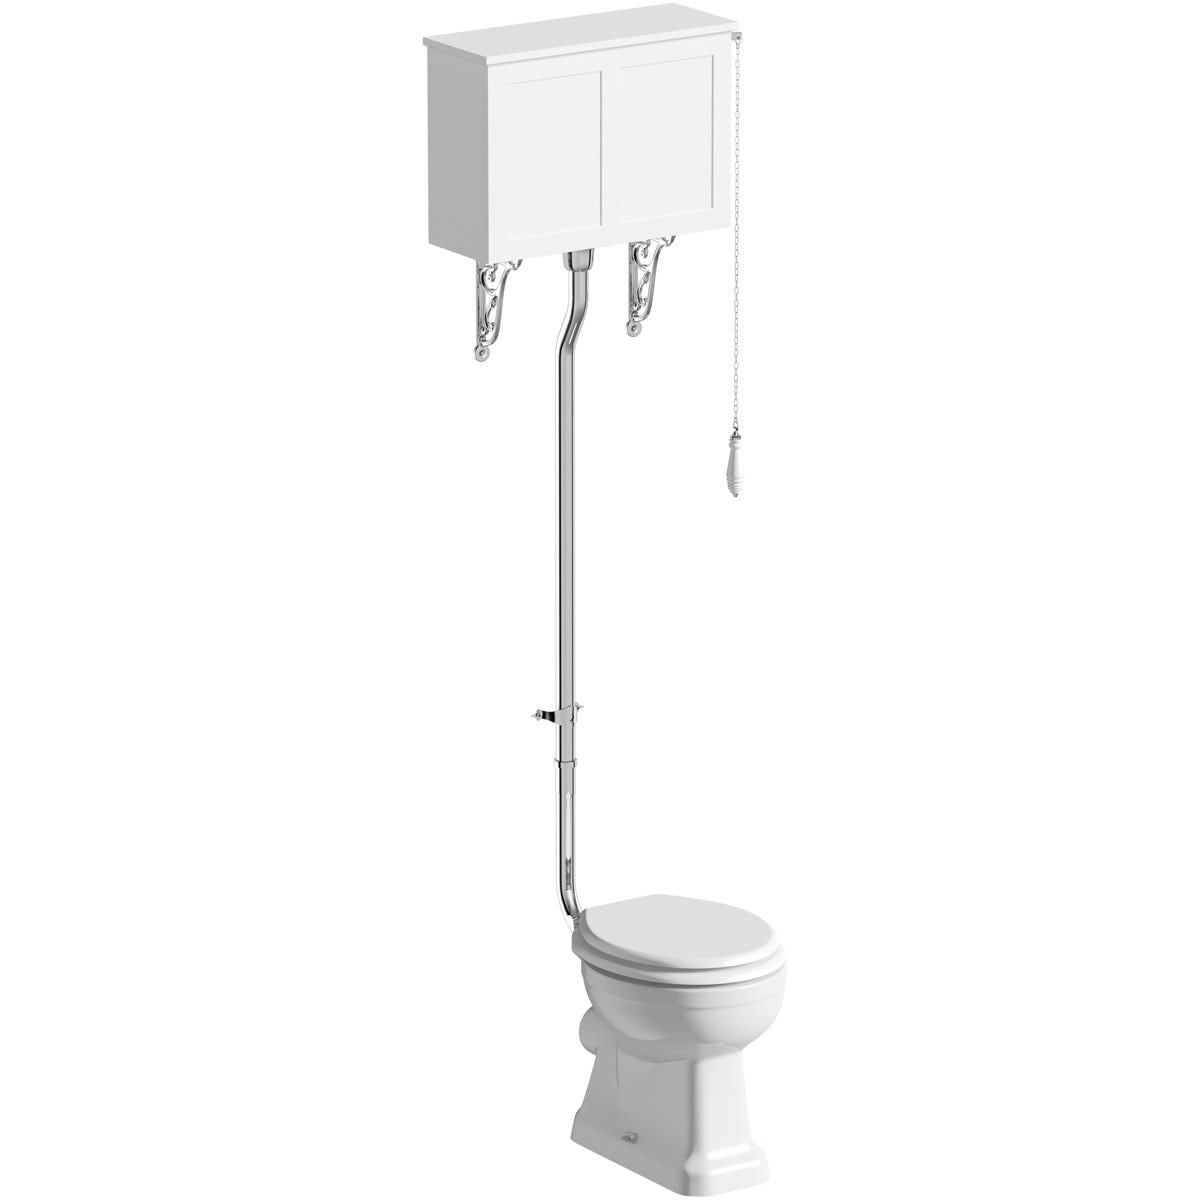 The Bath Co. Camberley high level toilet with white toilet box and seat